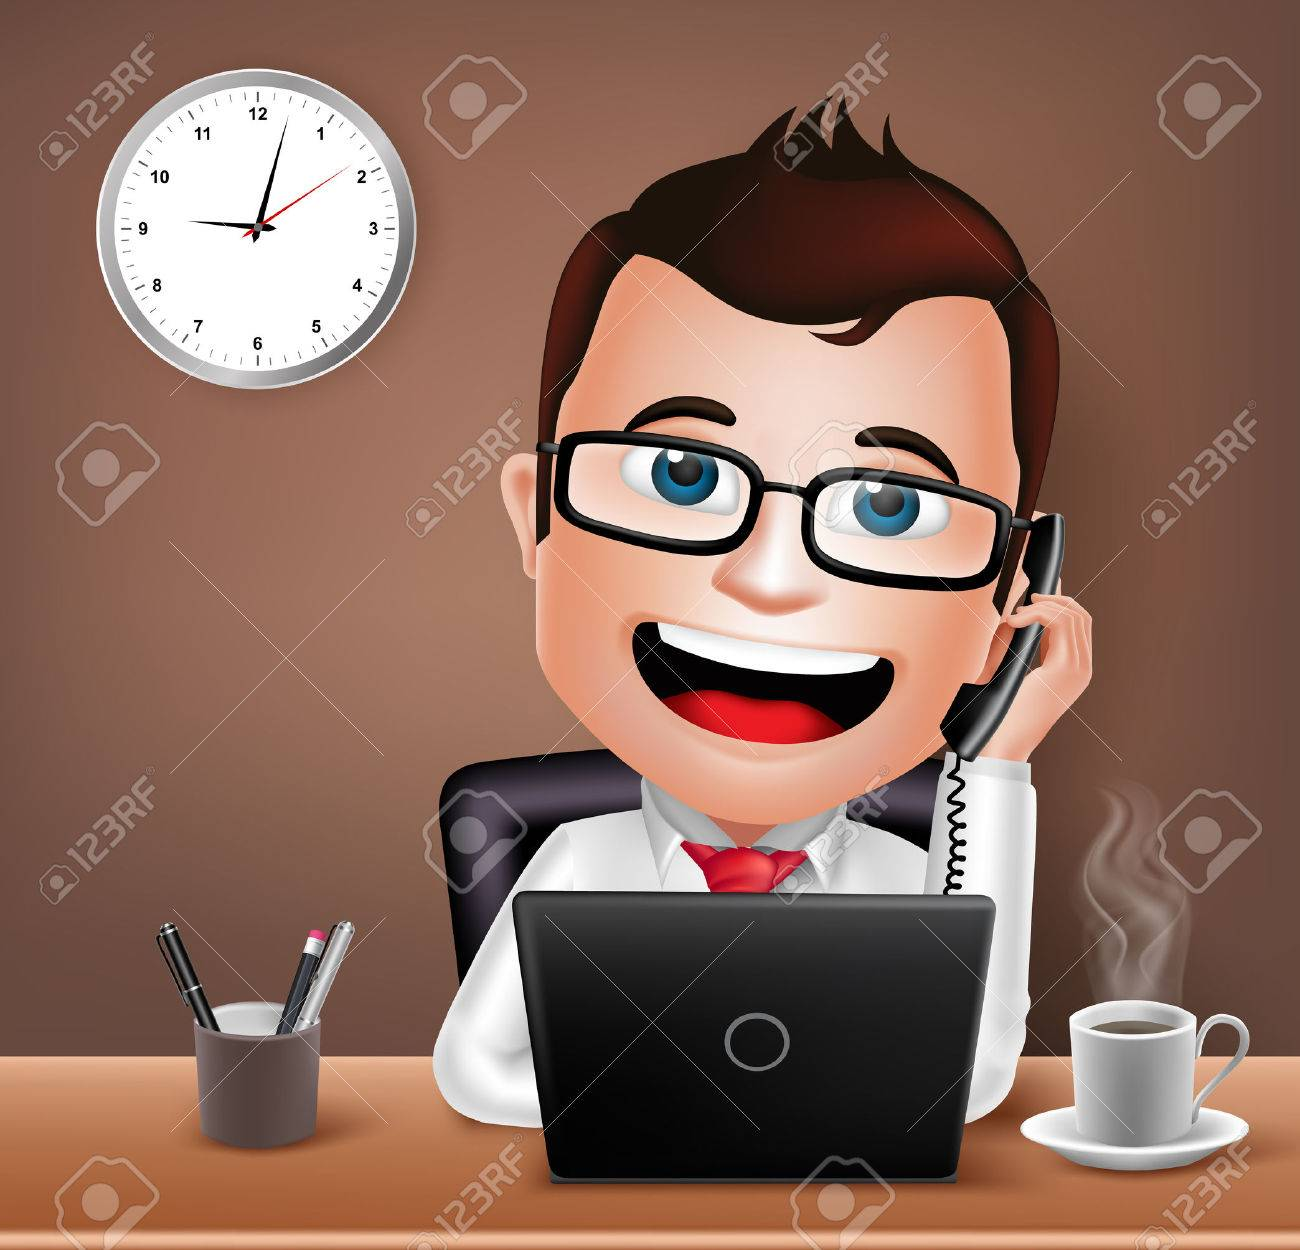 Realistic 3D Businessman Character Working on Office Desk Table with Laptop Talking on Telephone. Vector Illustration - 44816106